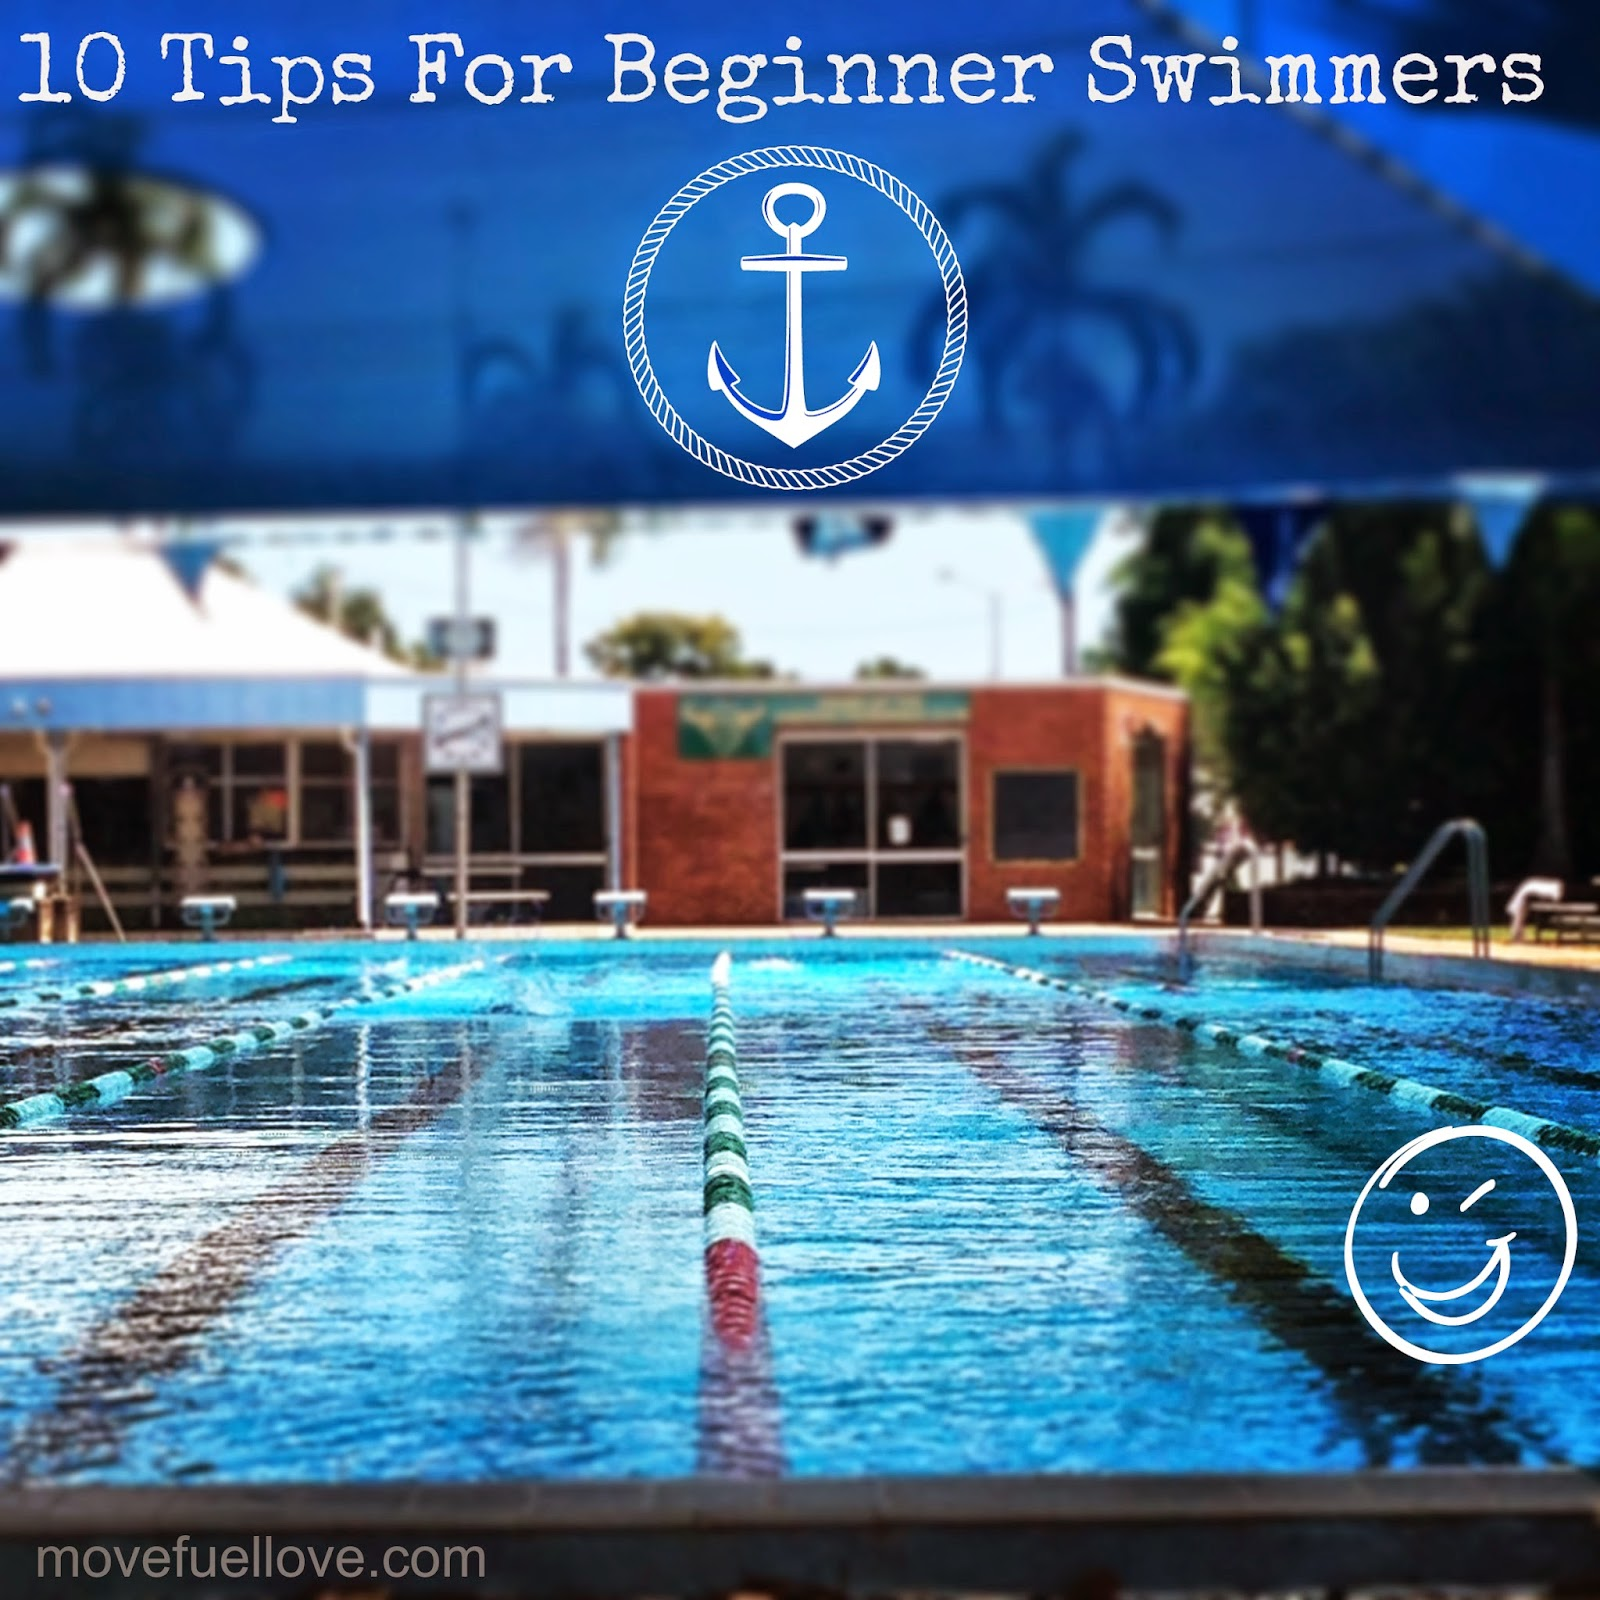 swimming, funny, quote, swimmers rant, swimmers meme, beginner swimming tips, fitness, training, exercise, weight loss, just keep moving